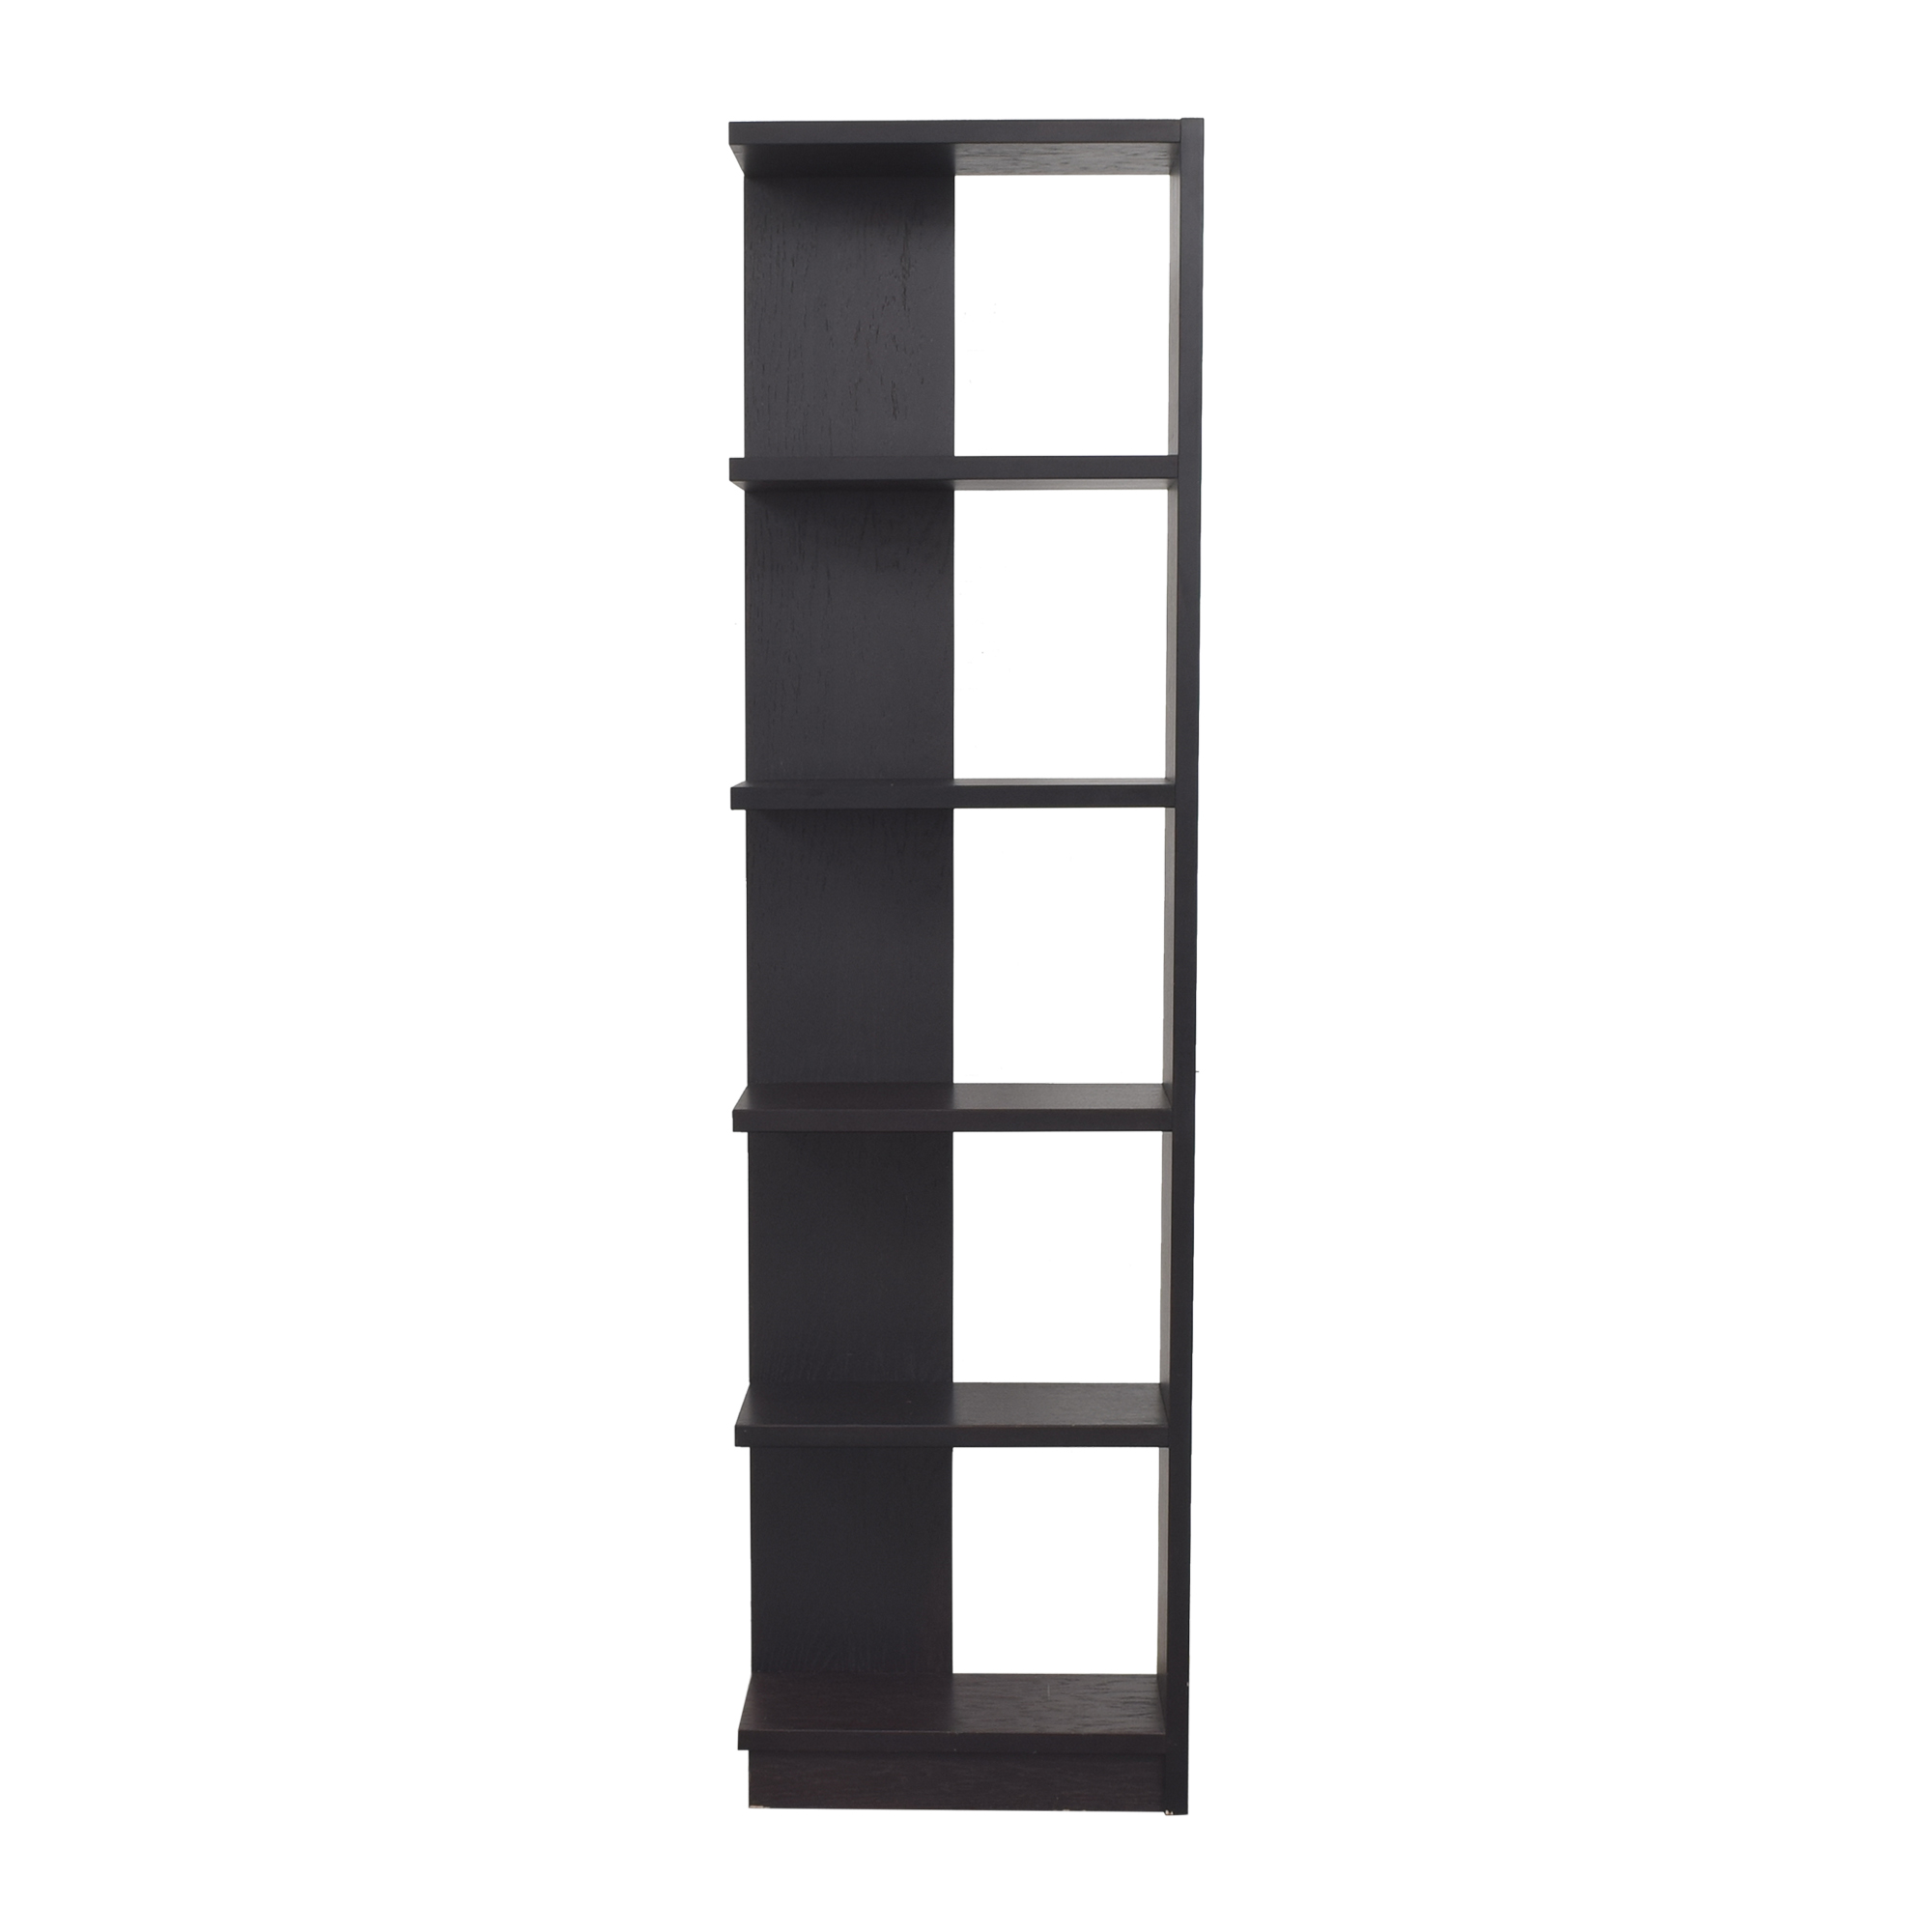 Crate & Barrel Crate & Barrel Elements Reversible Bookcase Bookcases & Shelving